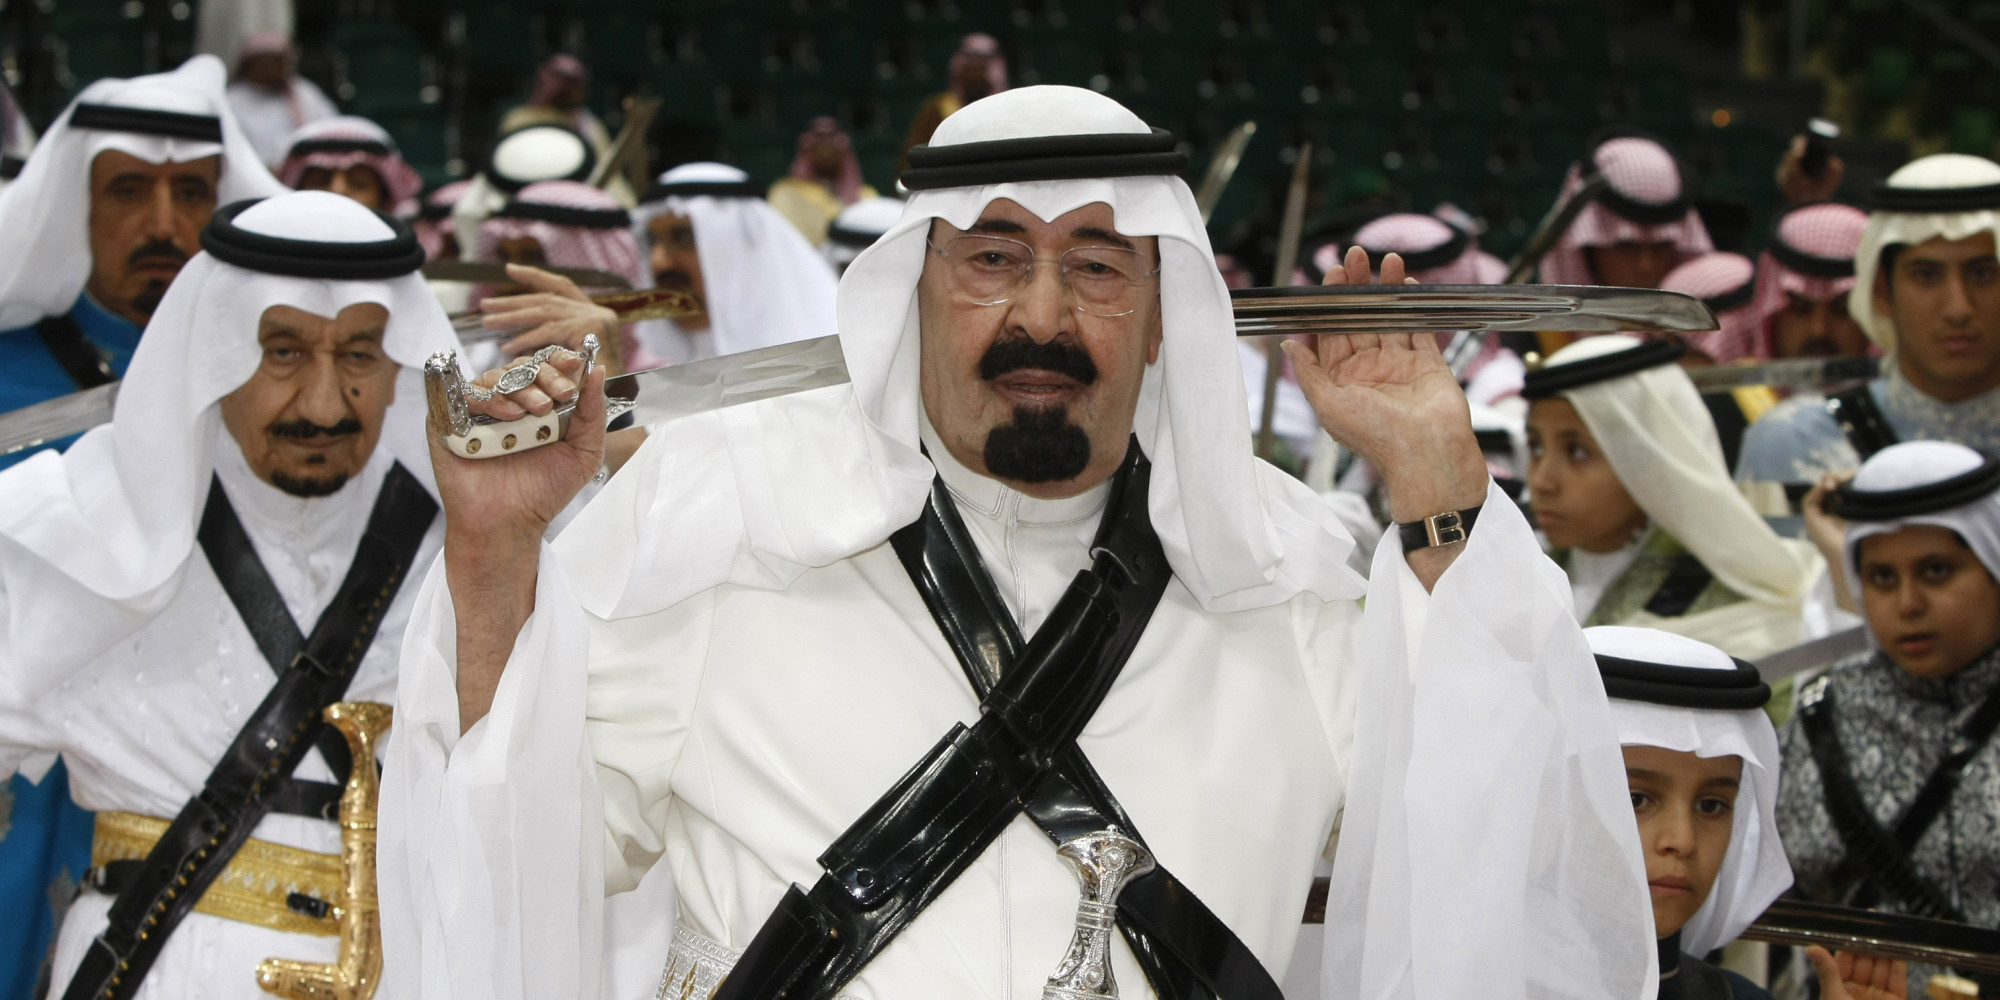 Middle East Time Bomb: The Real Aim of ISIS Is to Replace ...